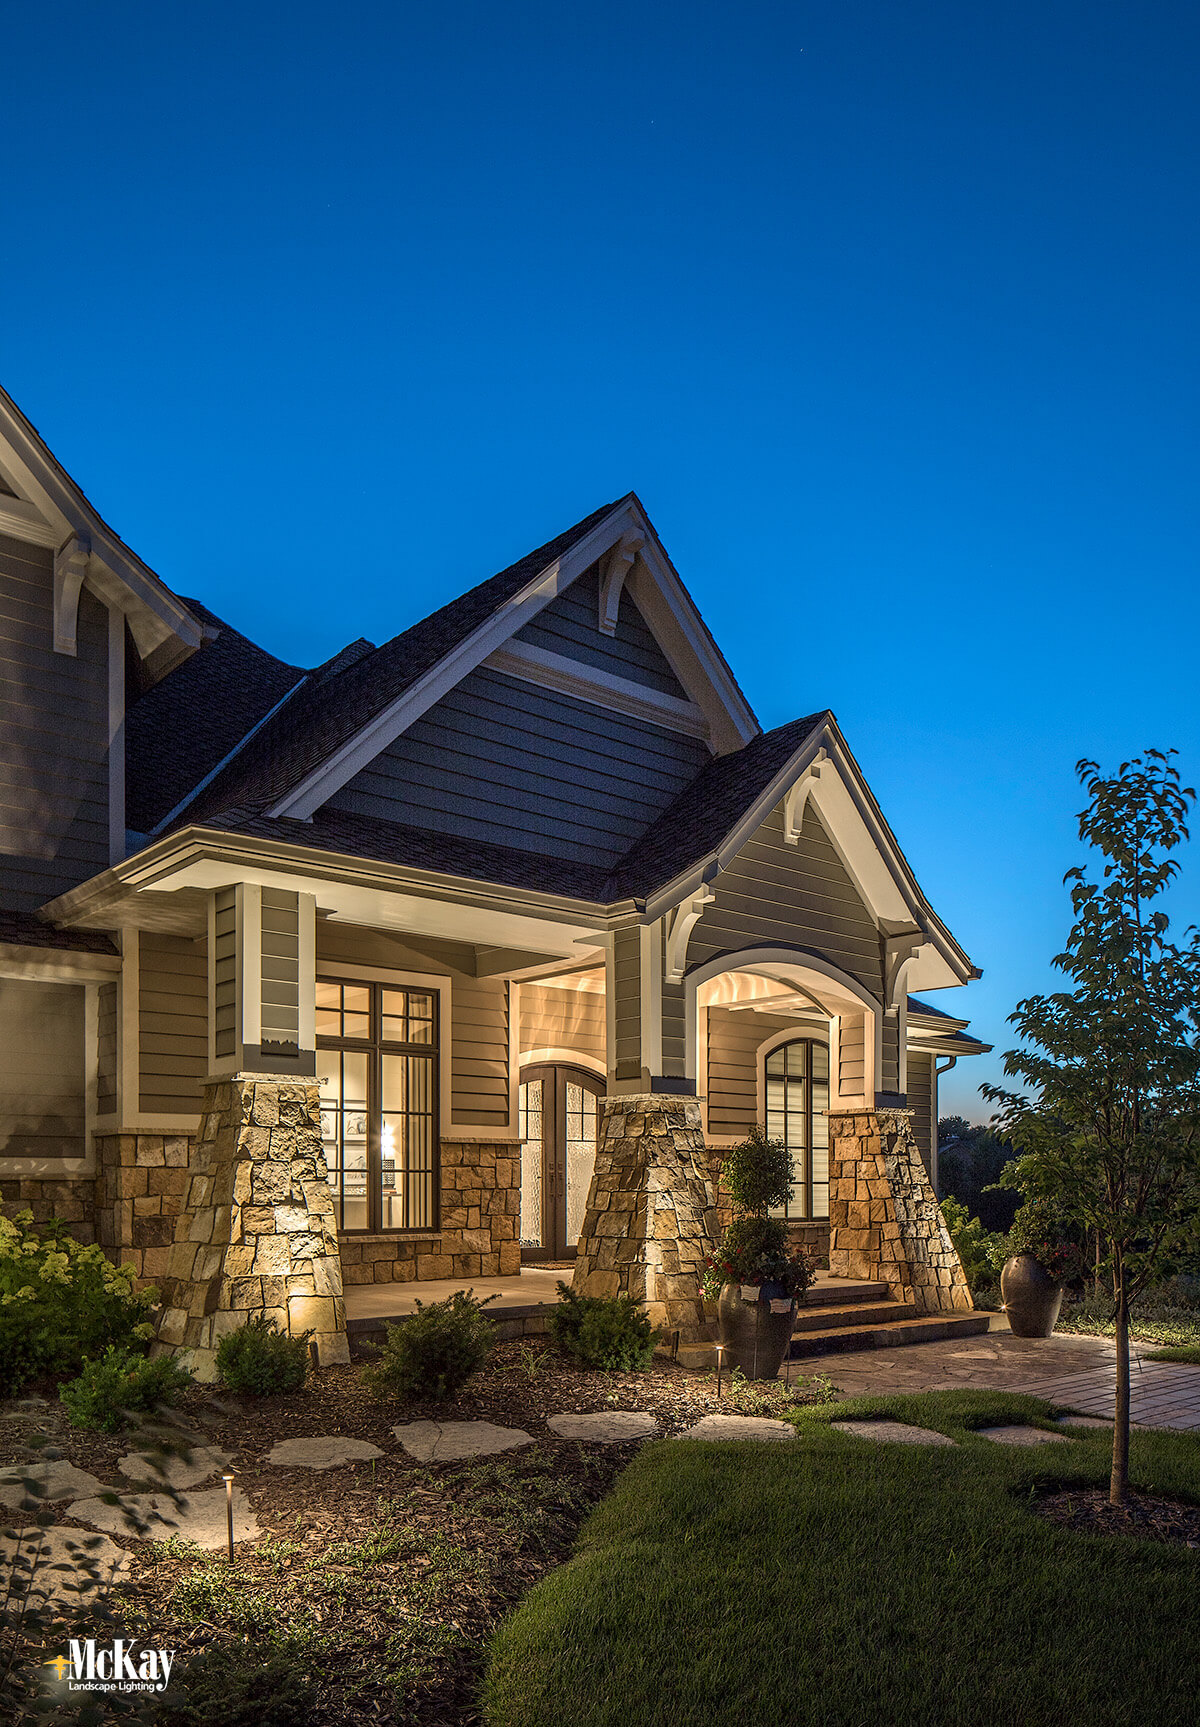 Thoughtful fixture placement at the base of the home lets the light gently crawl up the stonework and creates interesting shadows while evenly illuminating the front peaks. Click to learn more about the outdoor lighting design... | McKay Landscape Lighting - Omaha, Nebraska